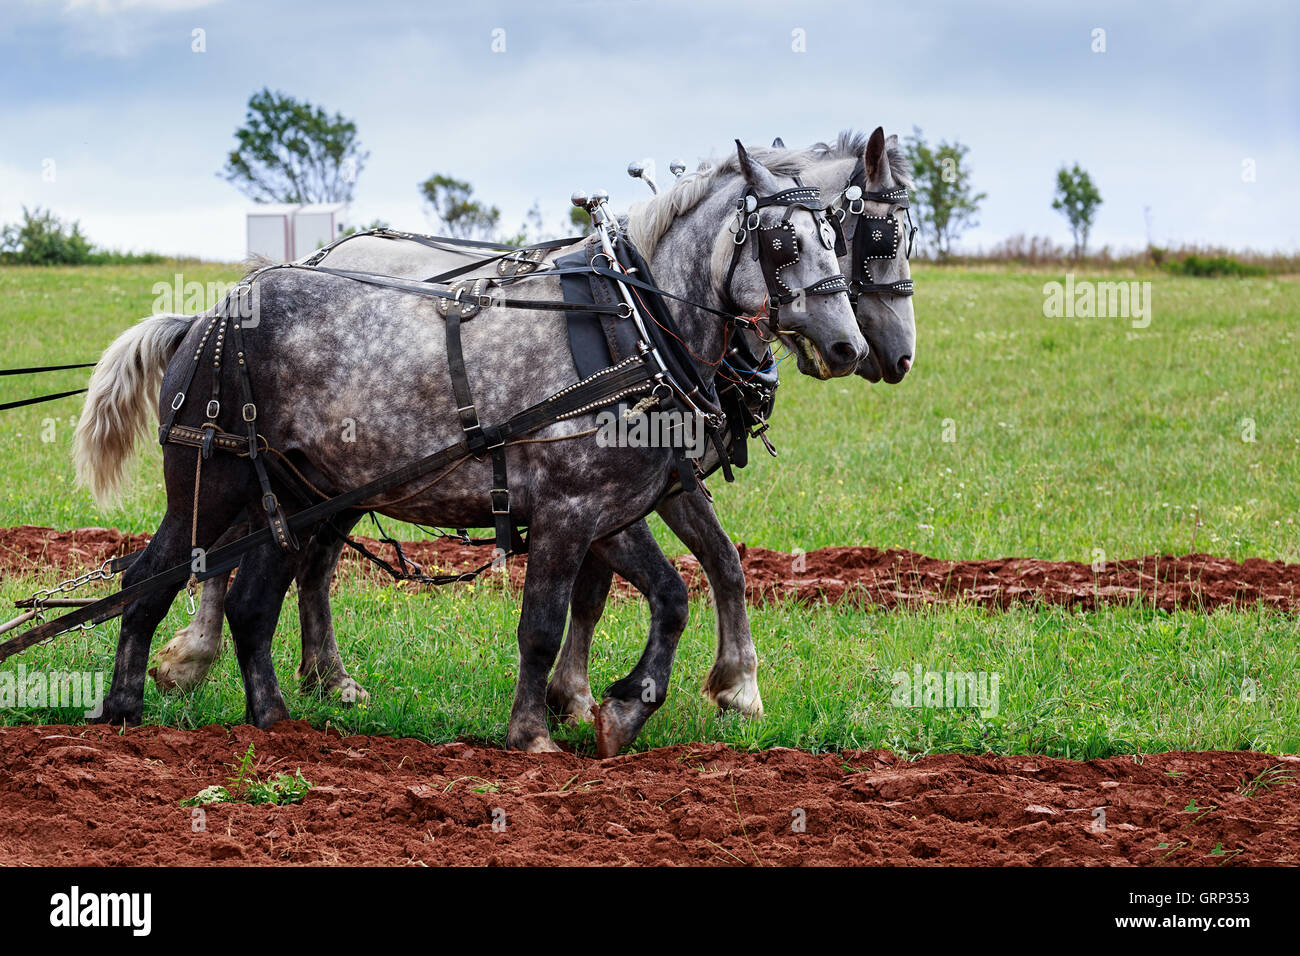 Plow Horse Harness Stock Photos & Plow Horse Harness Stock Images ...